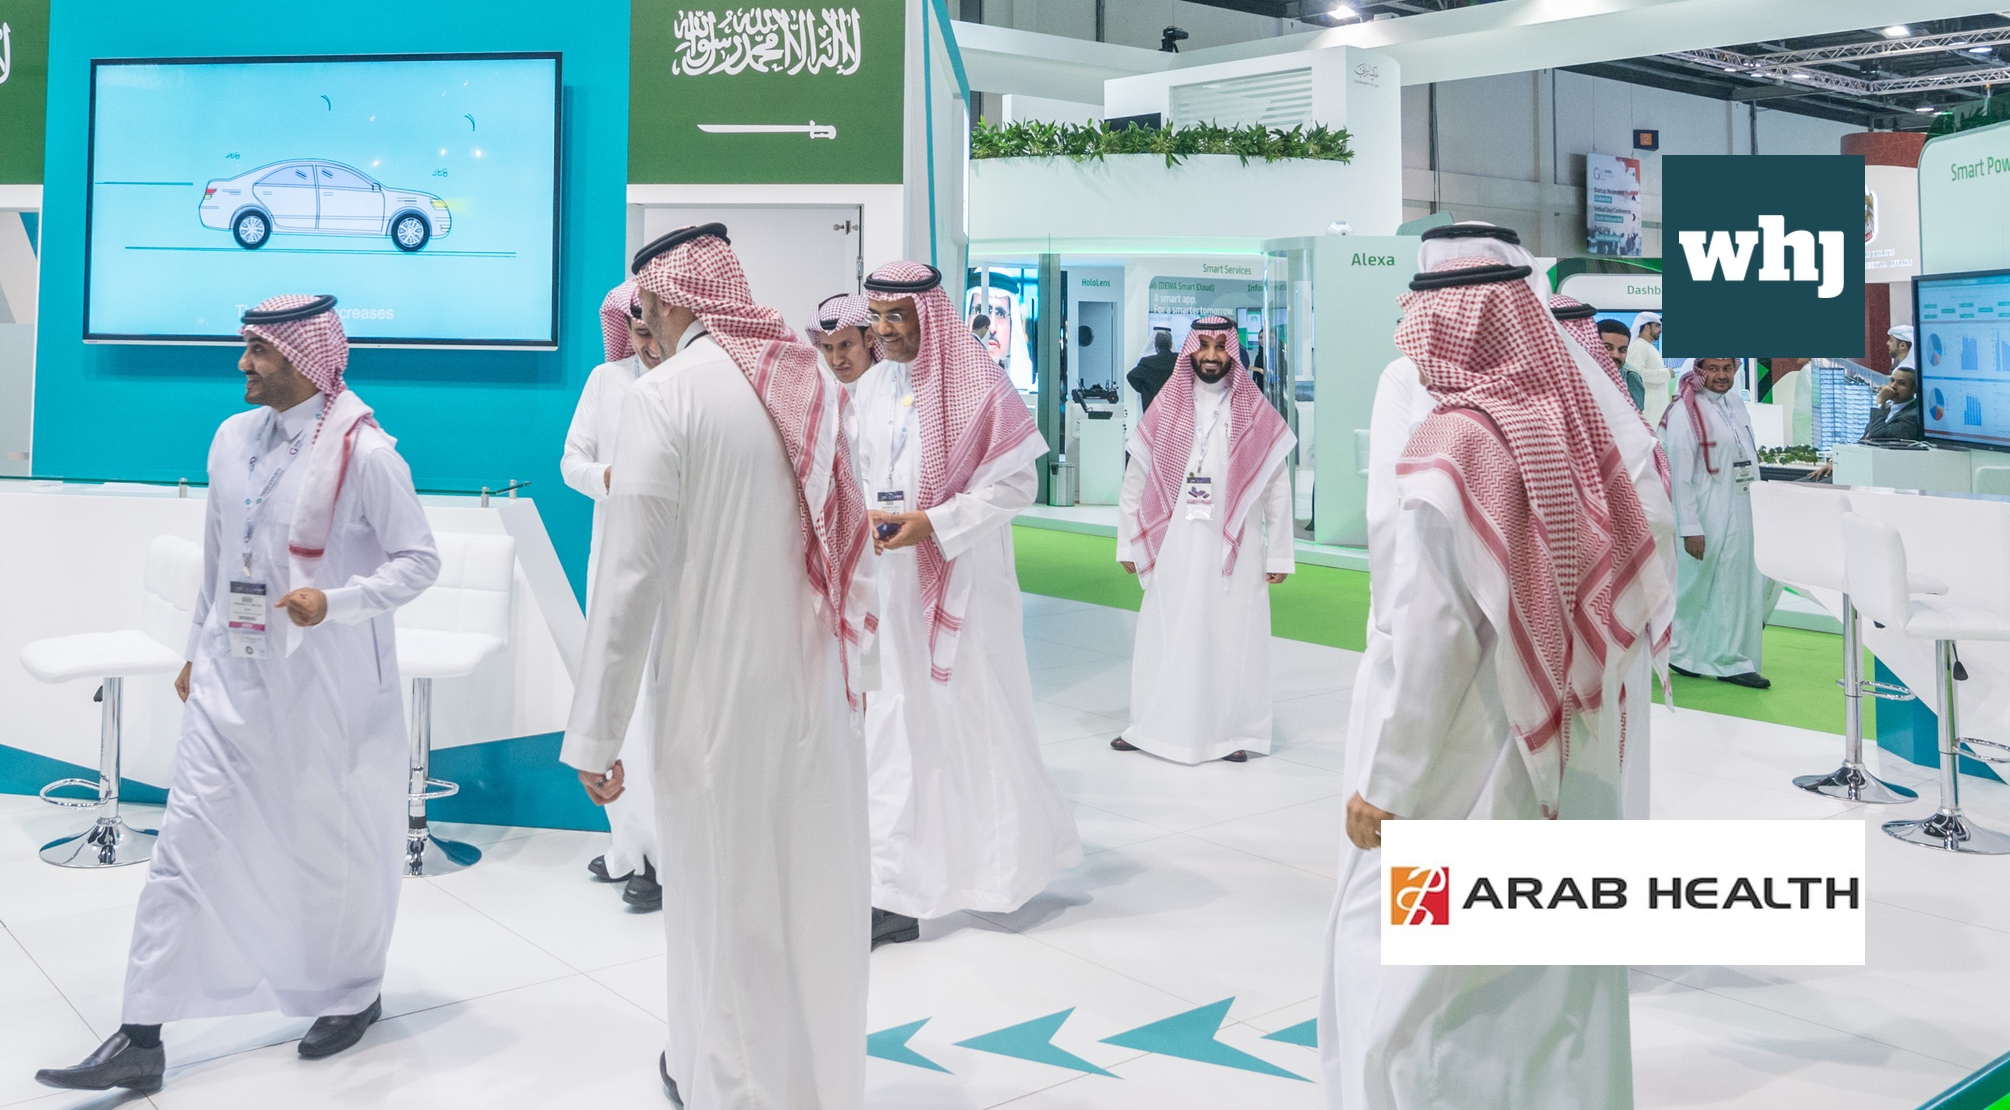 This year's Arab Health exhibition in Dubai is now well underway